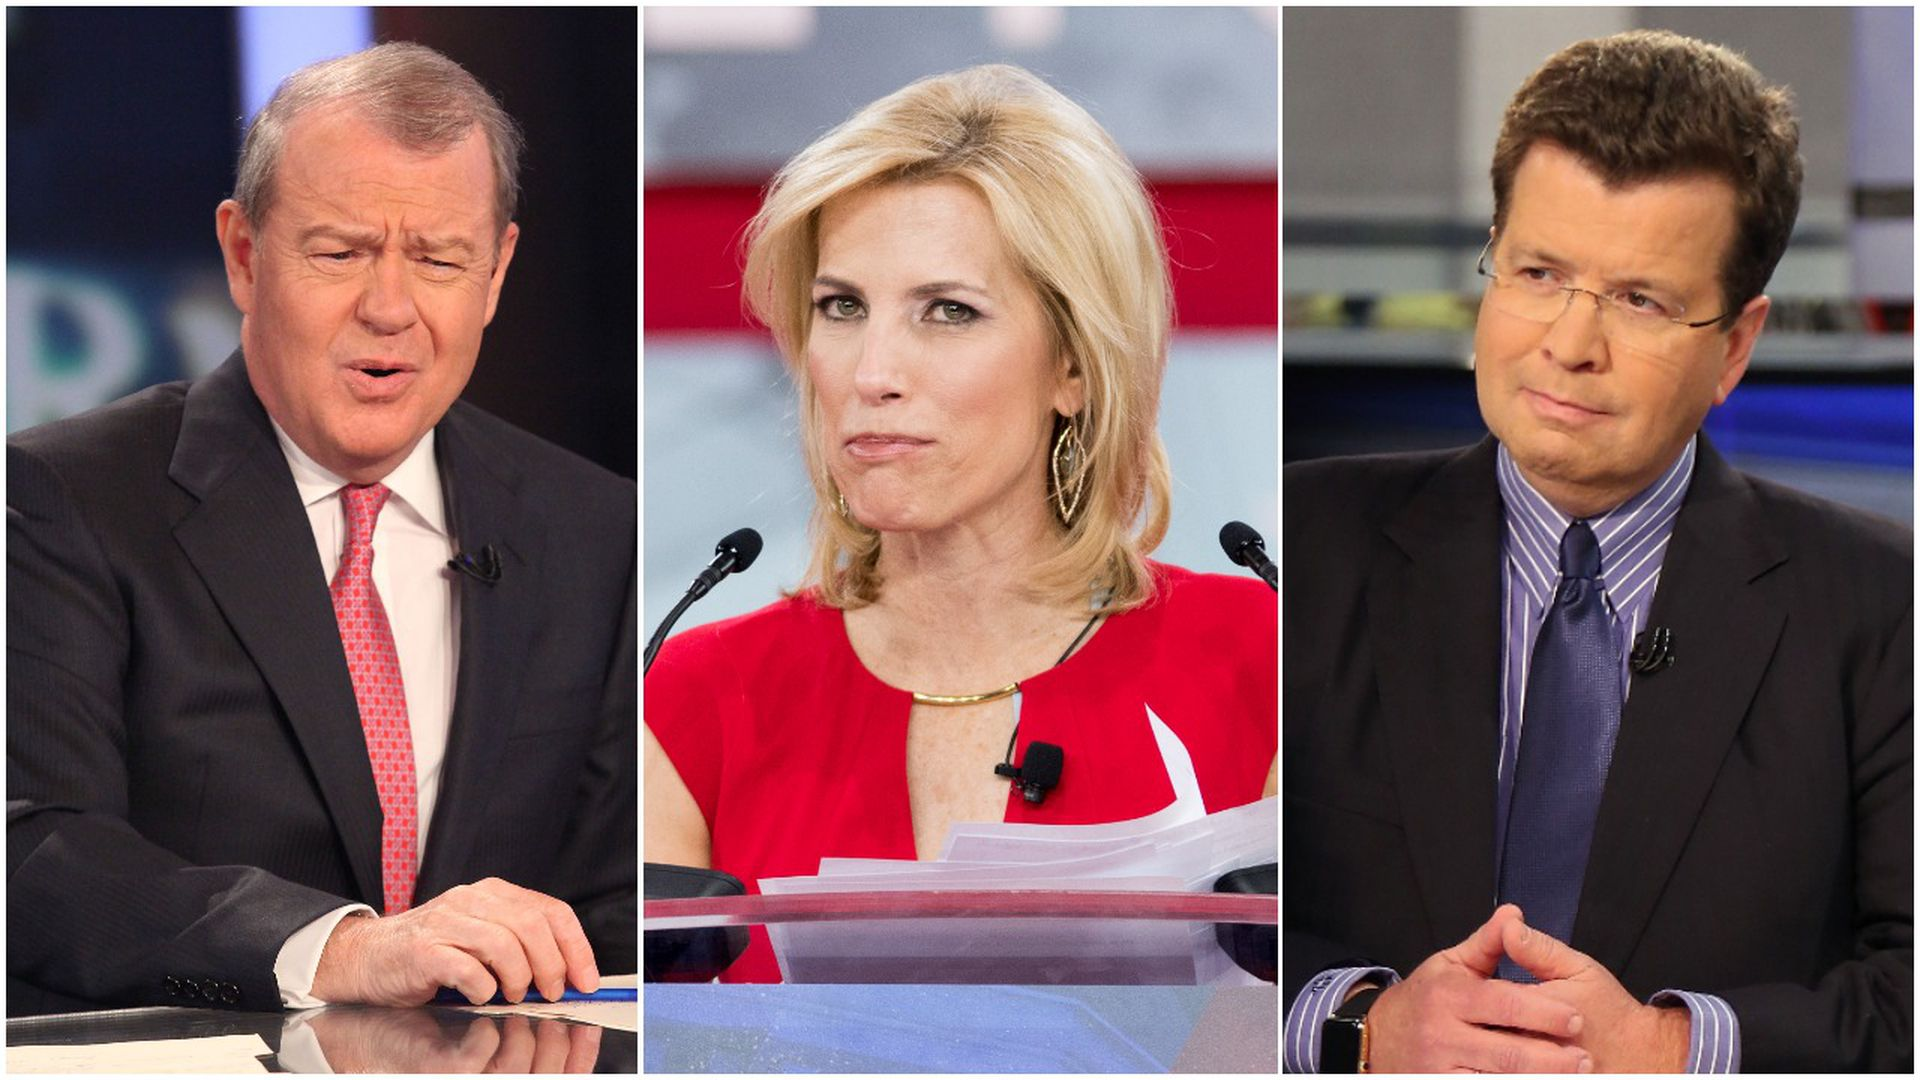 Stuart Varney, Laura Ingraham and Neil Cavuto all wear quizzical faces